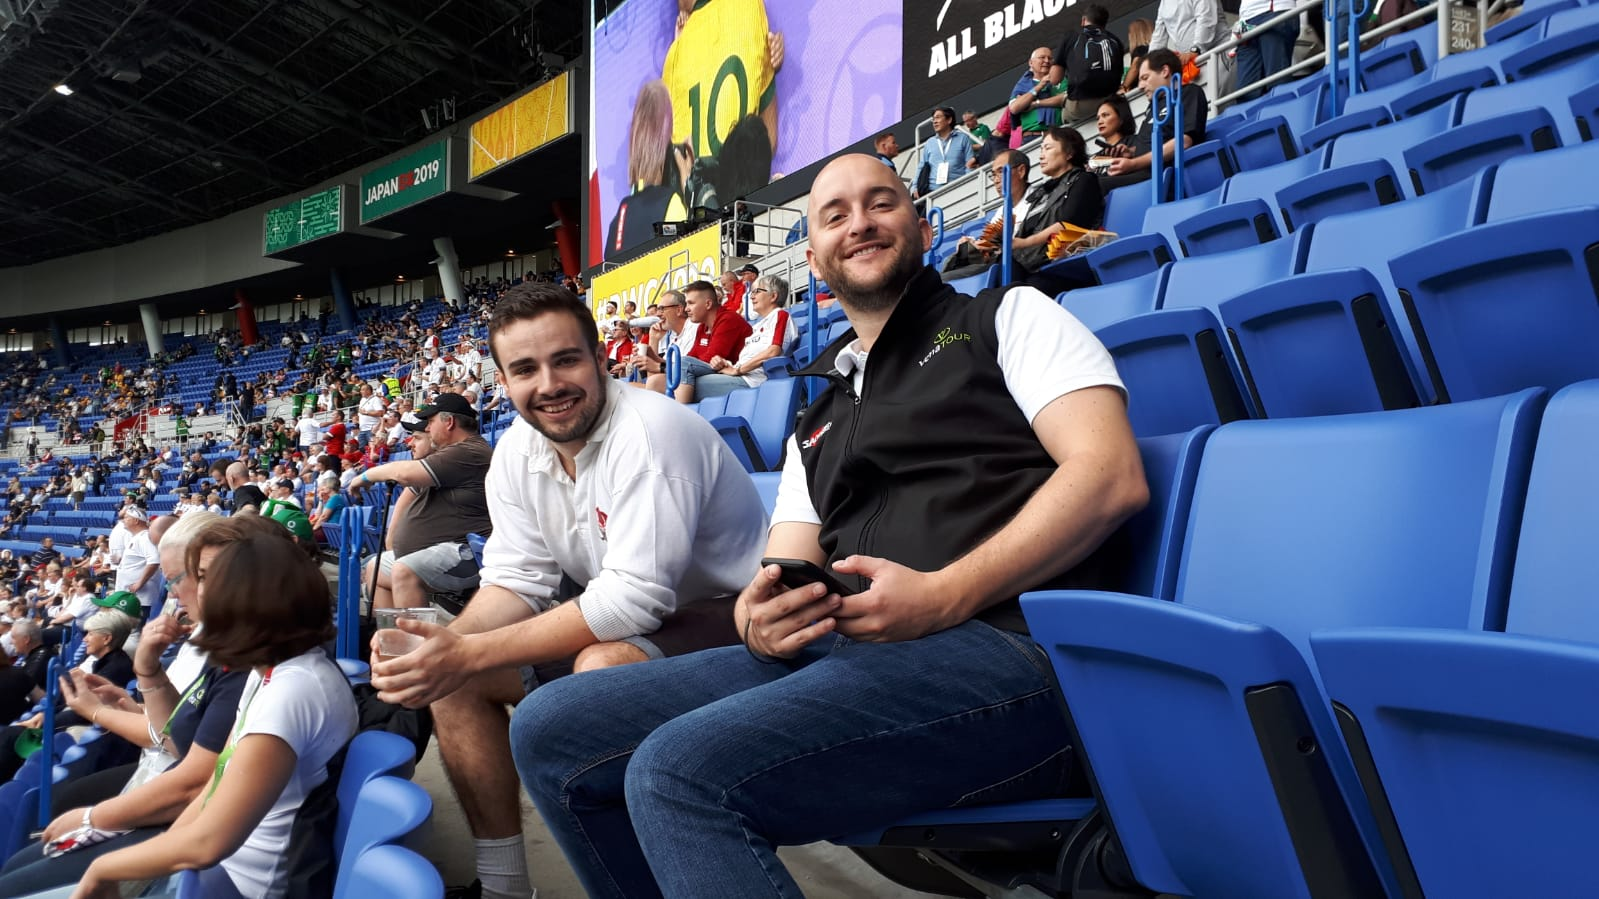 Venatour at Rugby World Cup 2019™, Sports Travel